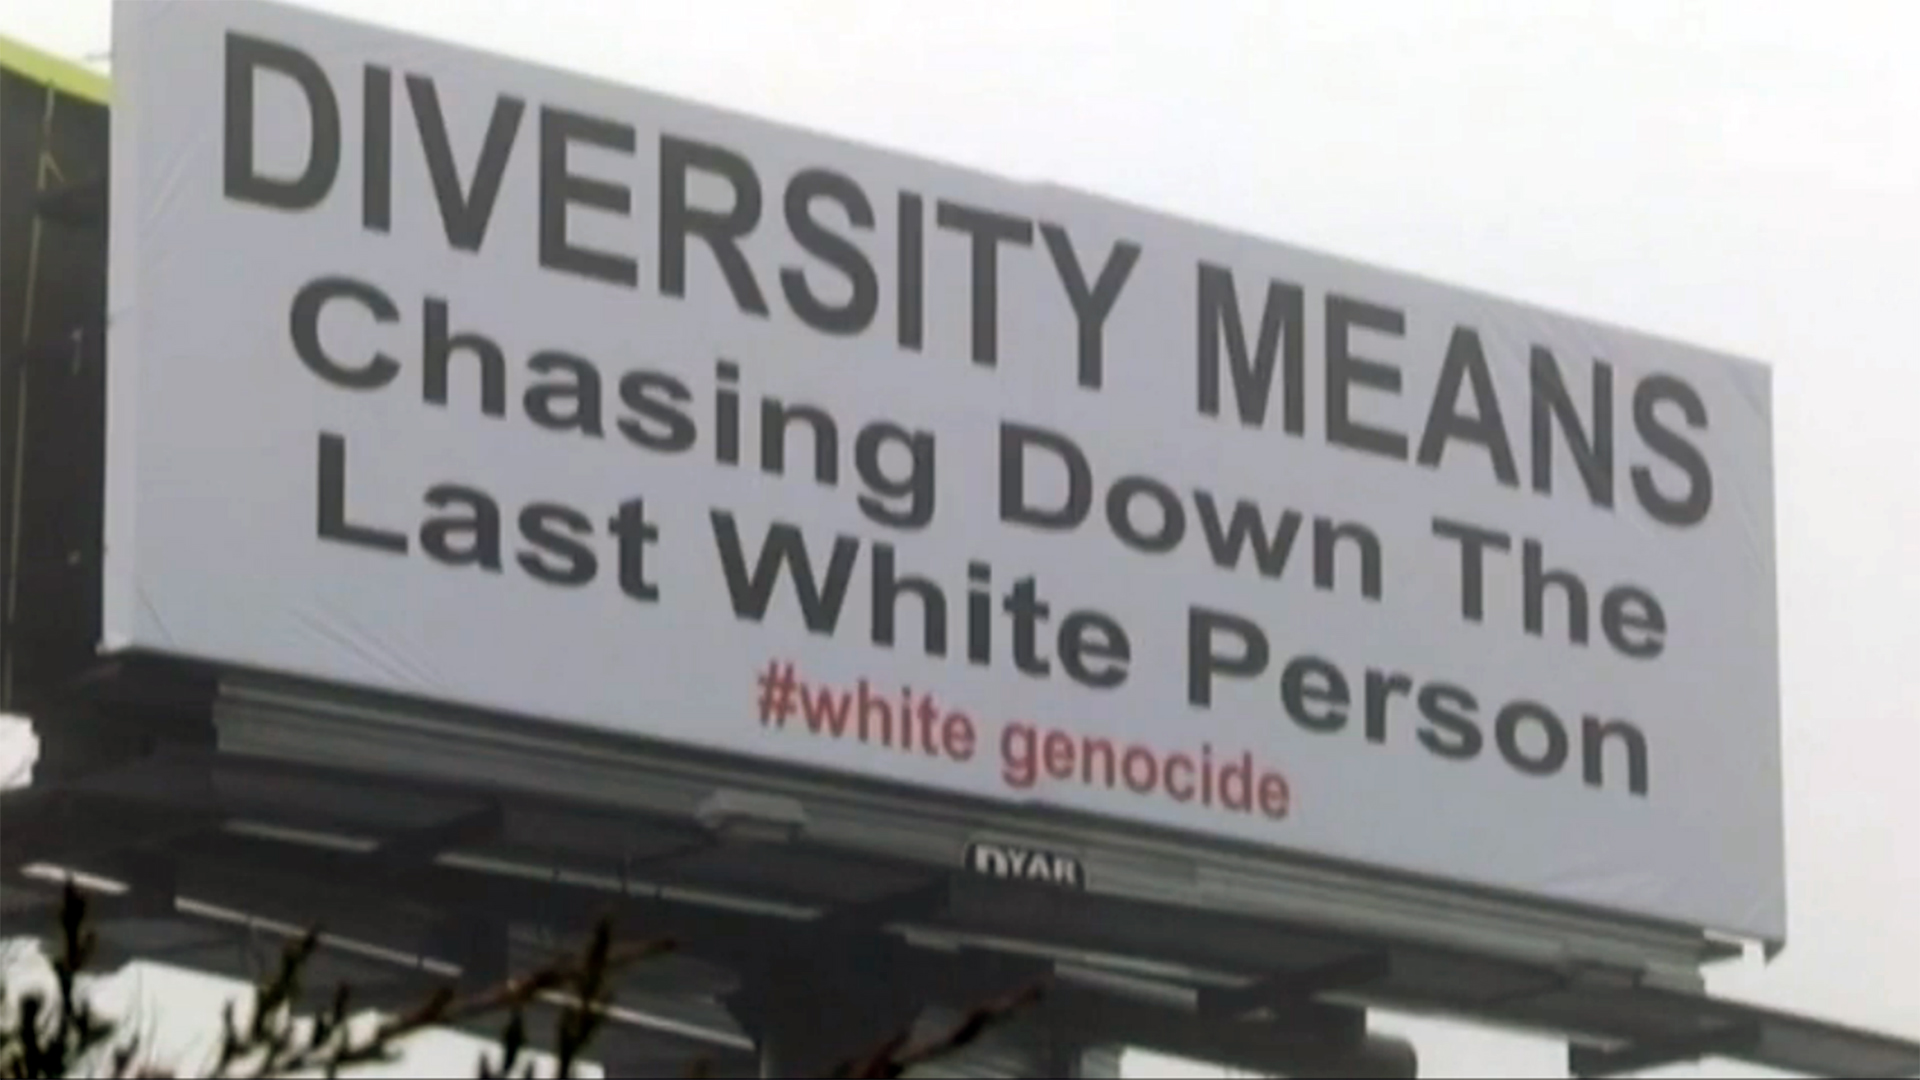 Billboard Tagged '#White Genocide' Stirs Controversy - NBC ...